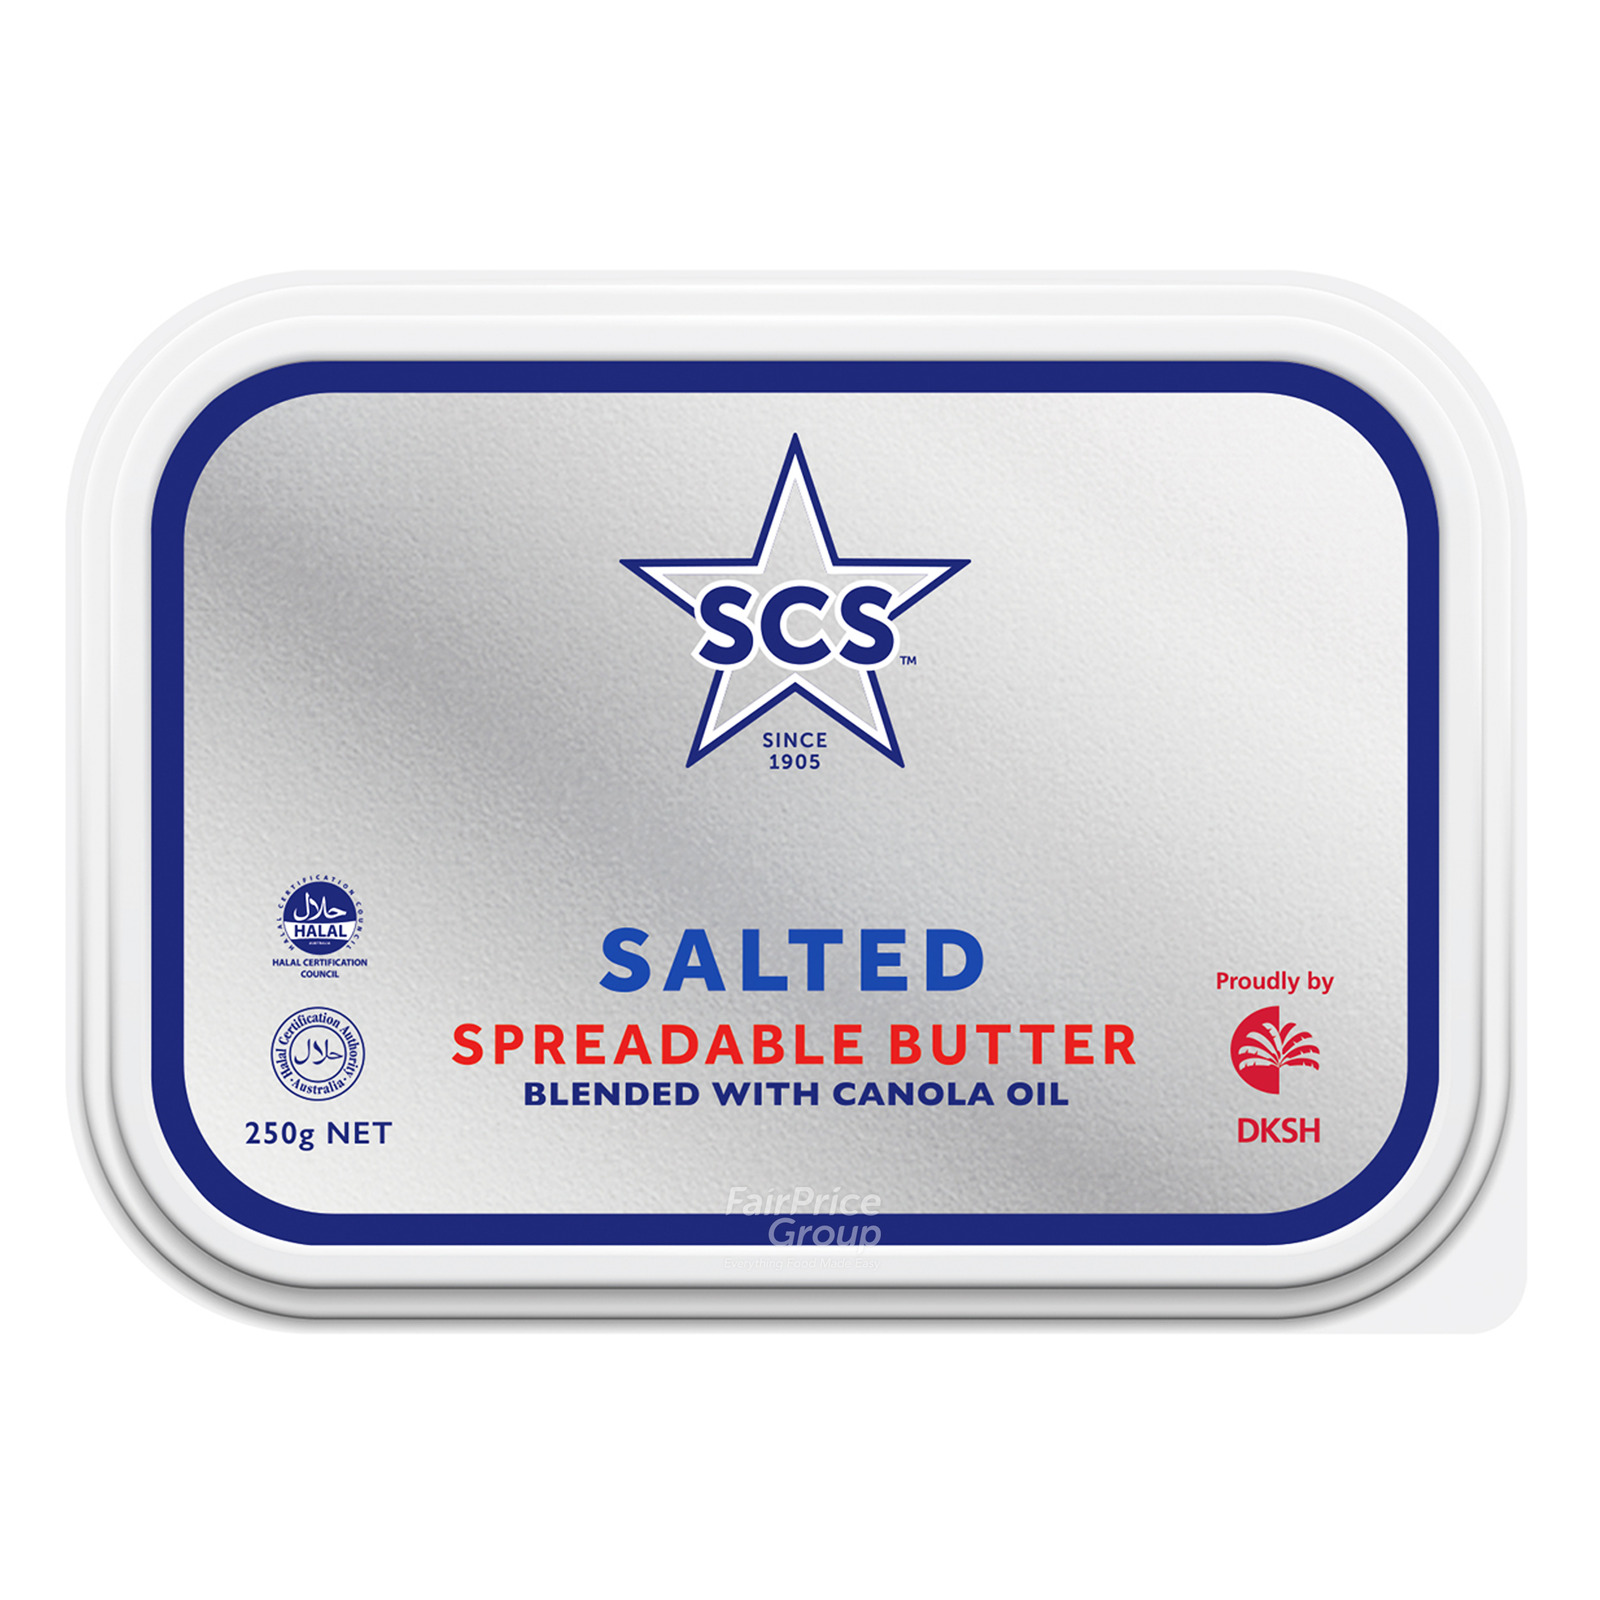 SCS Spreadable Butter - Salted